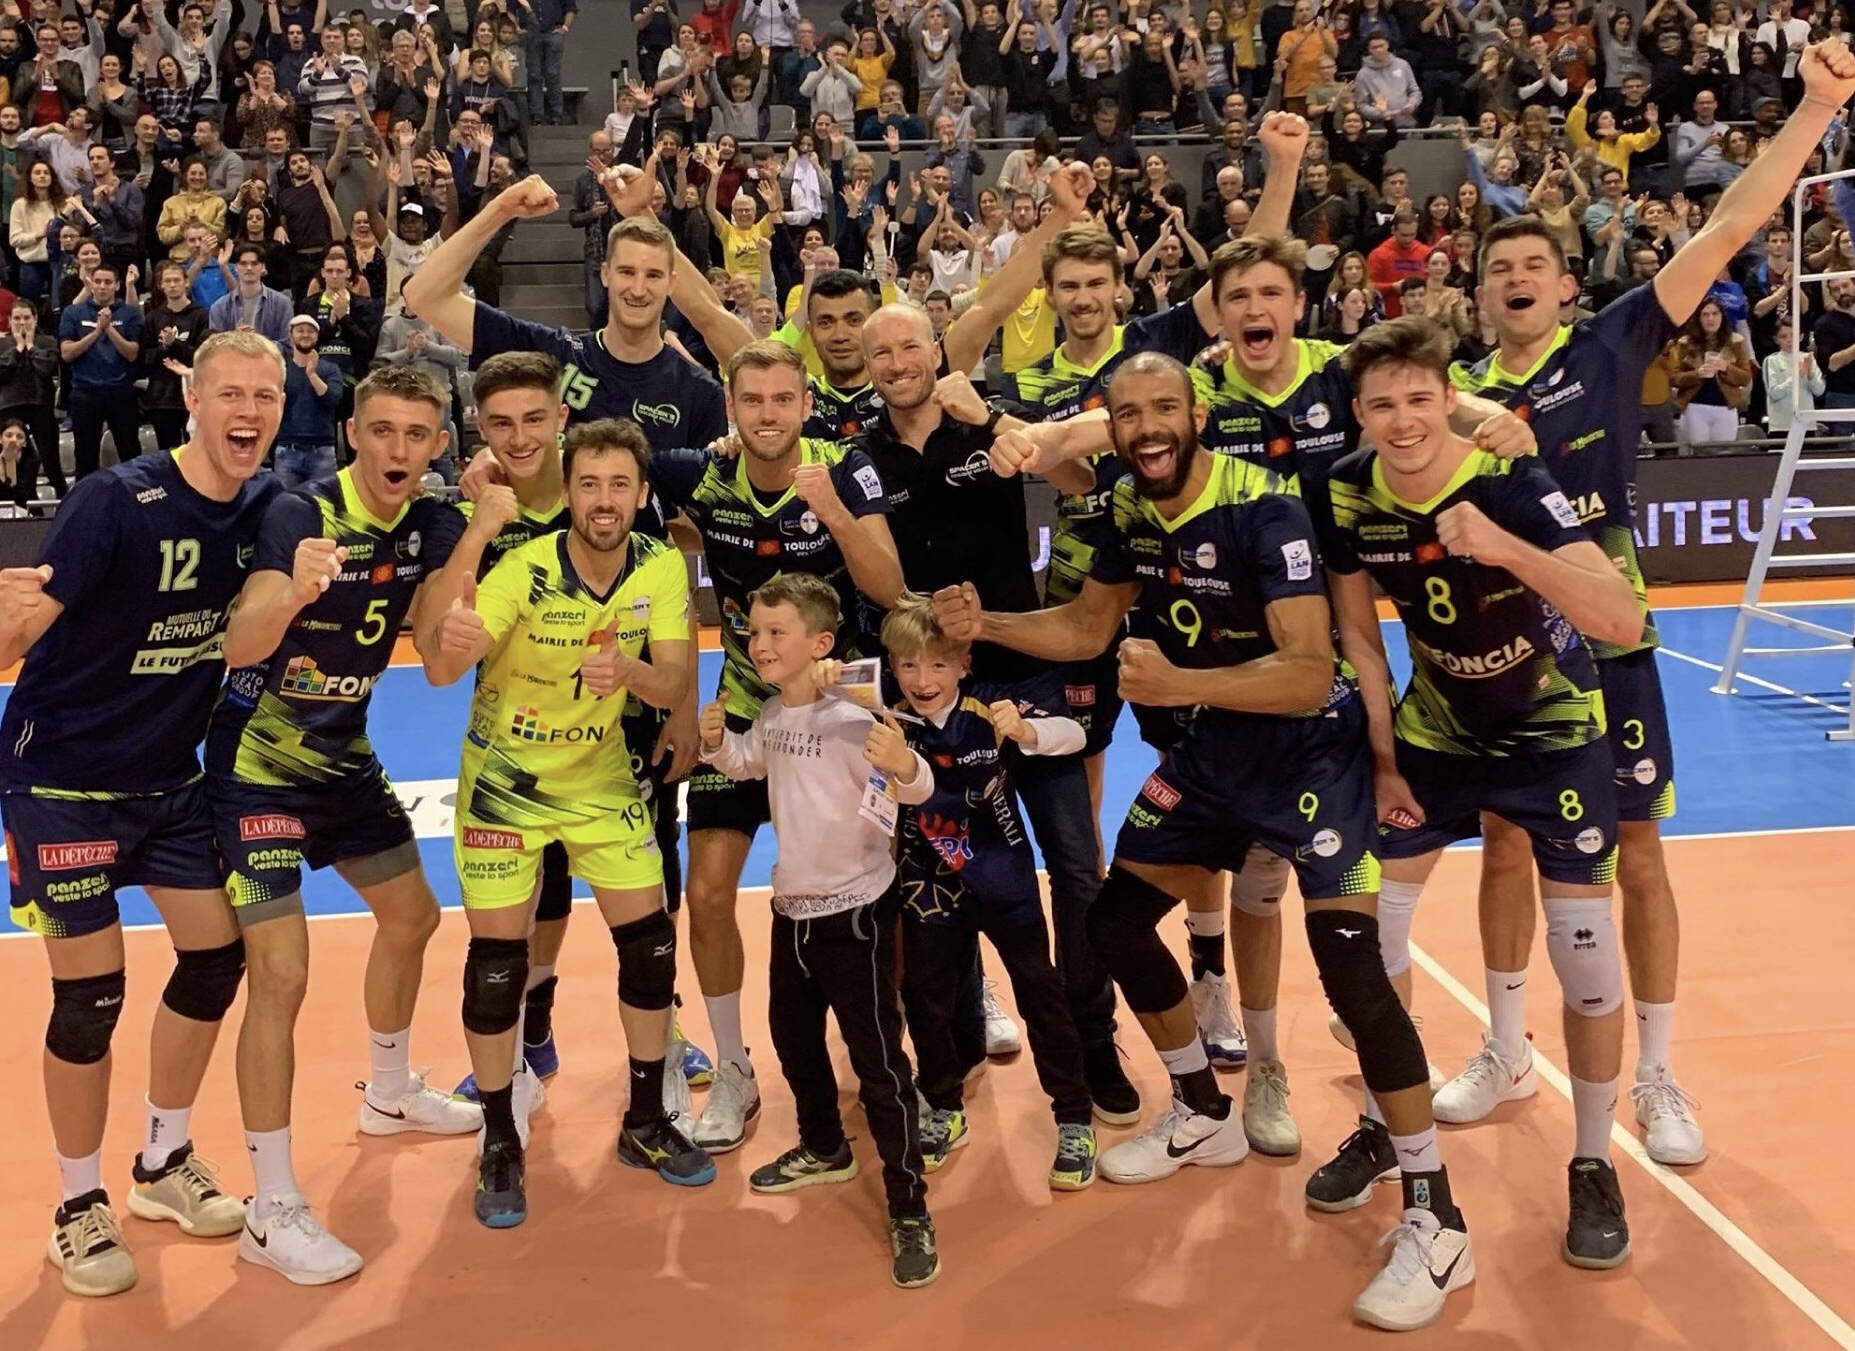 France: Toulouse sweep Tours, Nice beats Cannes with 20 winning blocks, but it is relegated